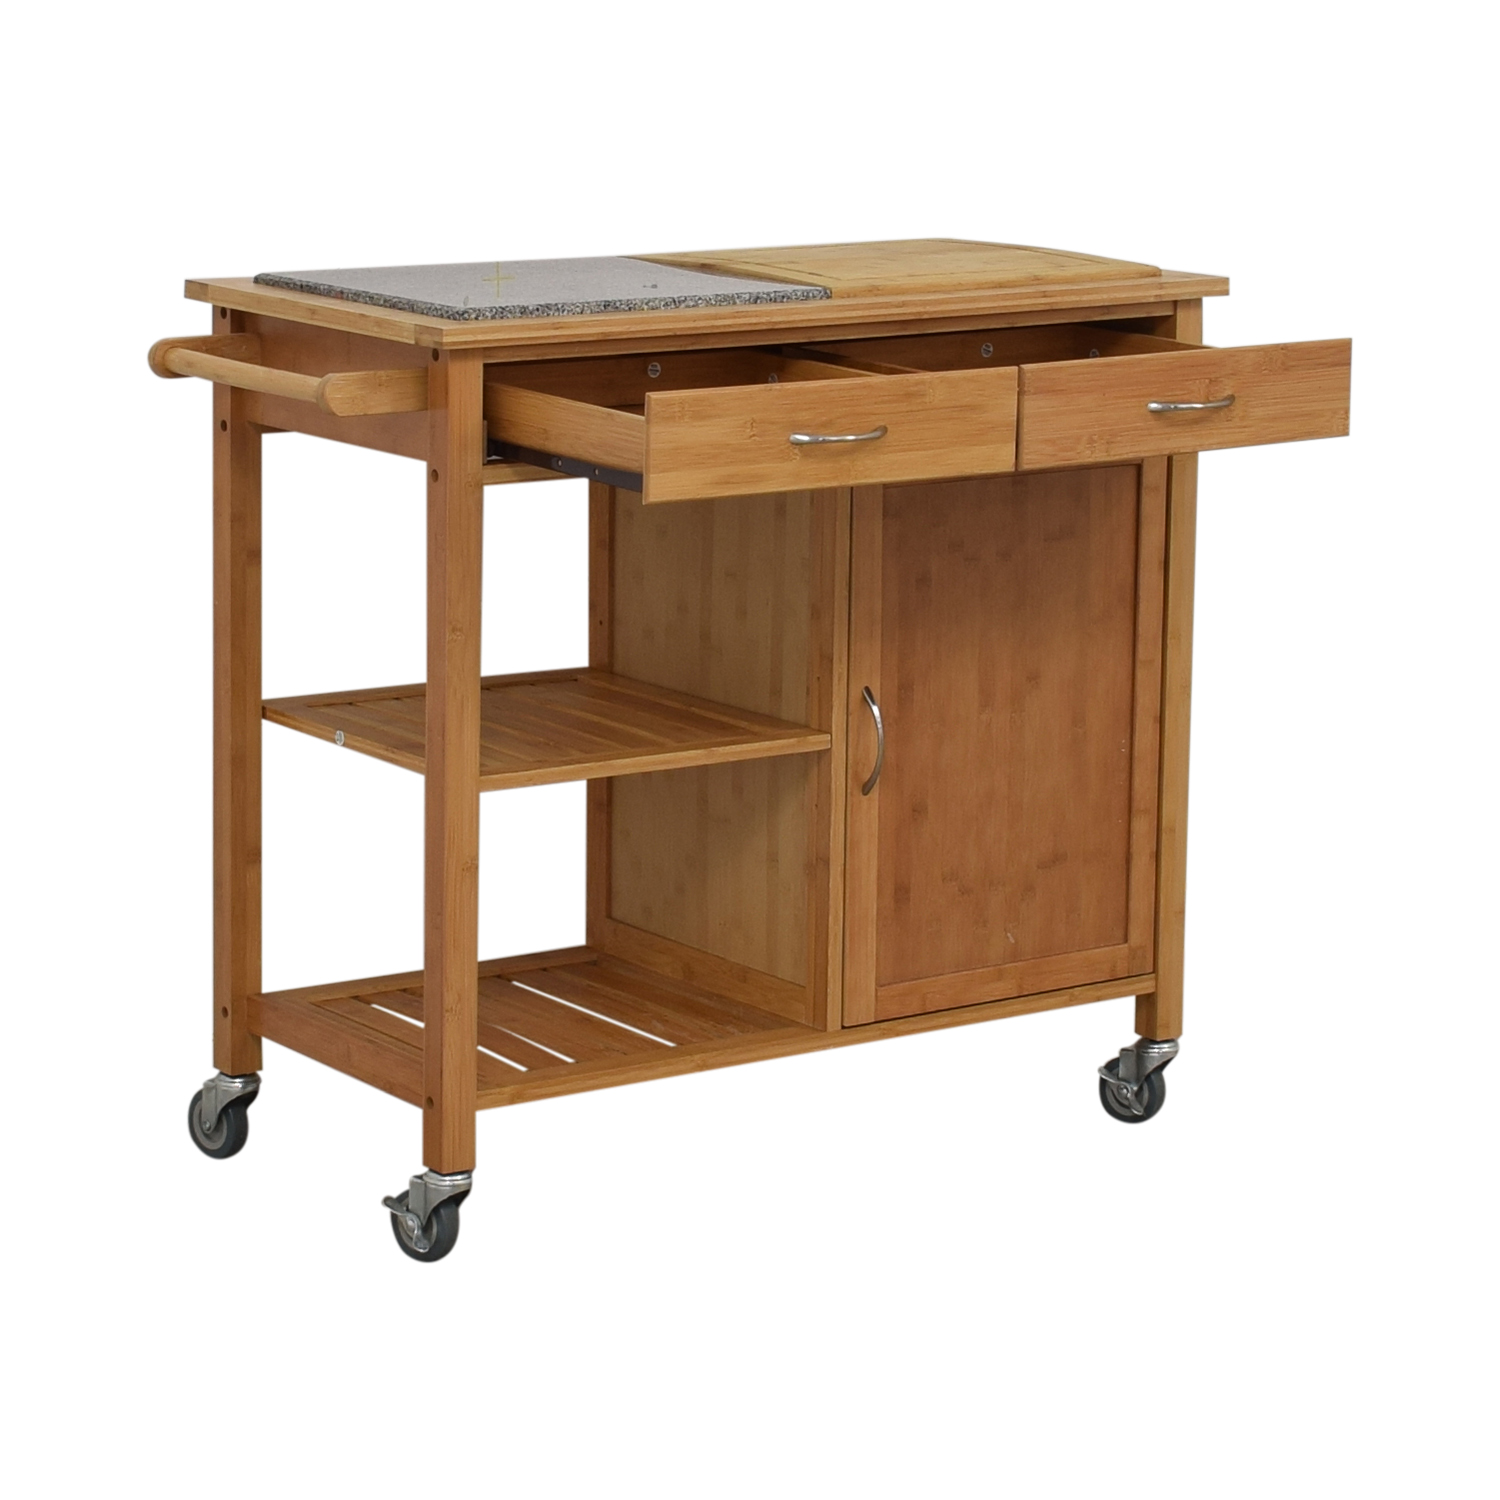 shop Linon Home Linon Home Bamboo Rolling Kitchen Island online